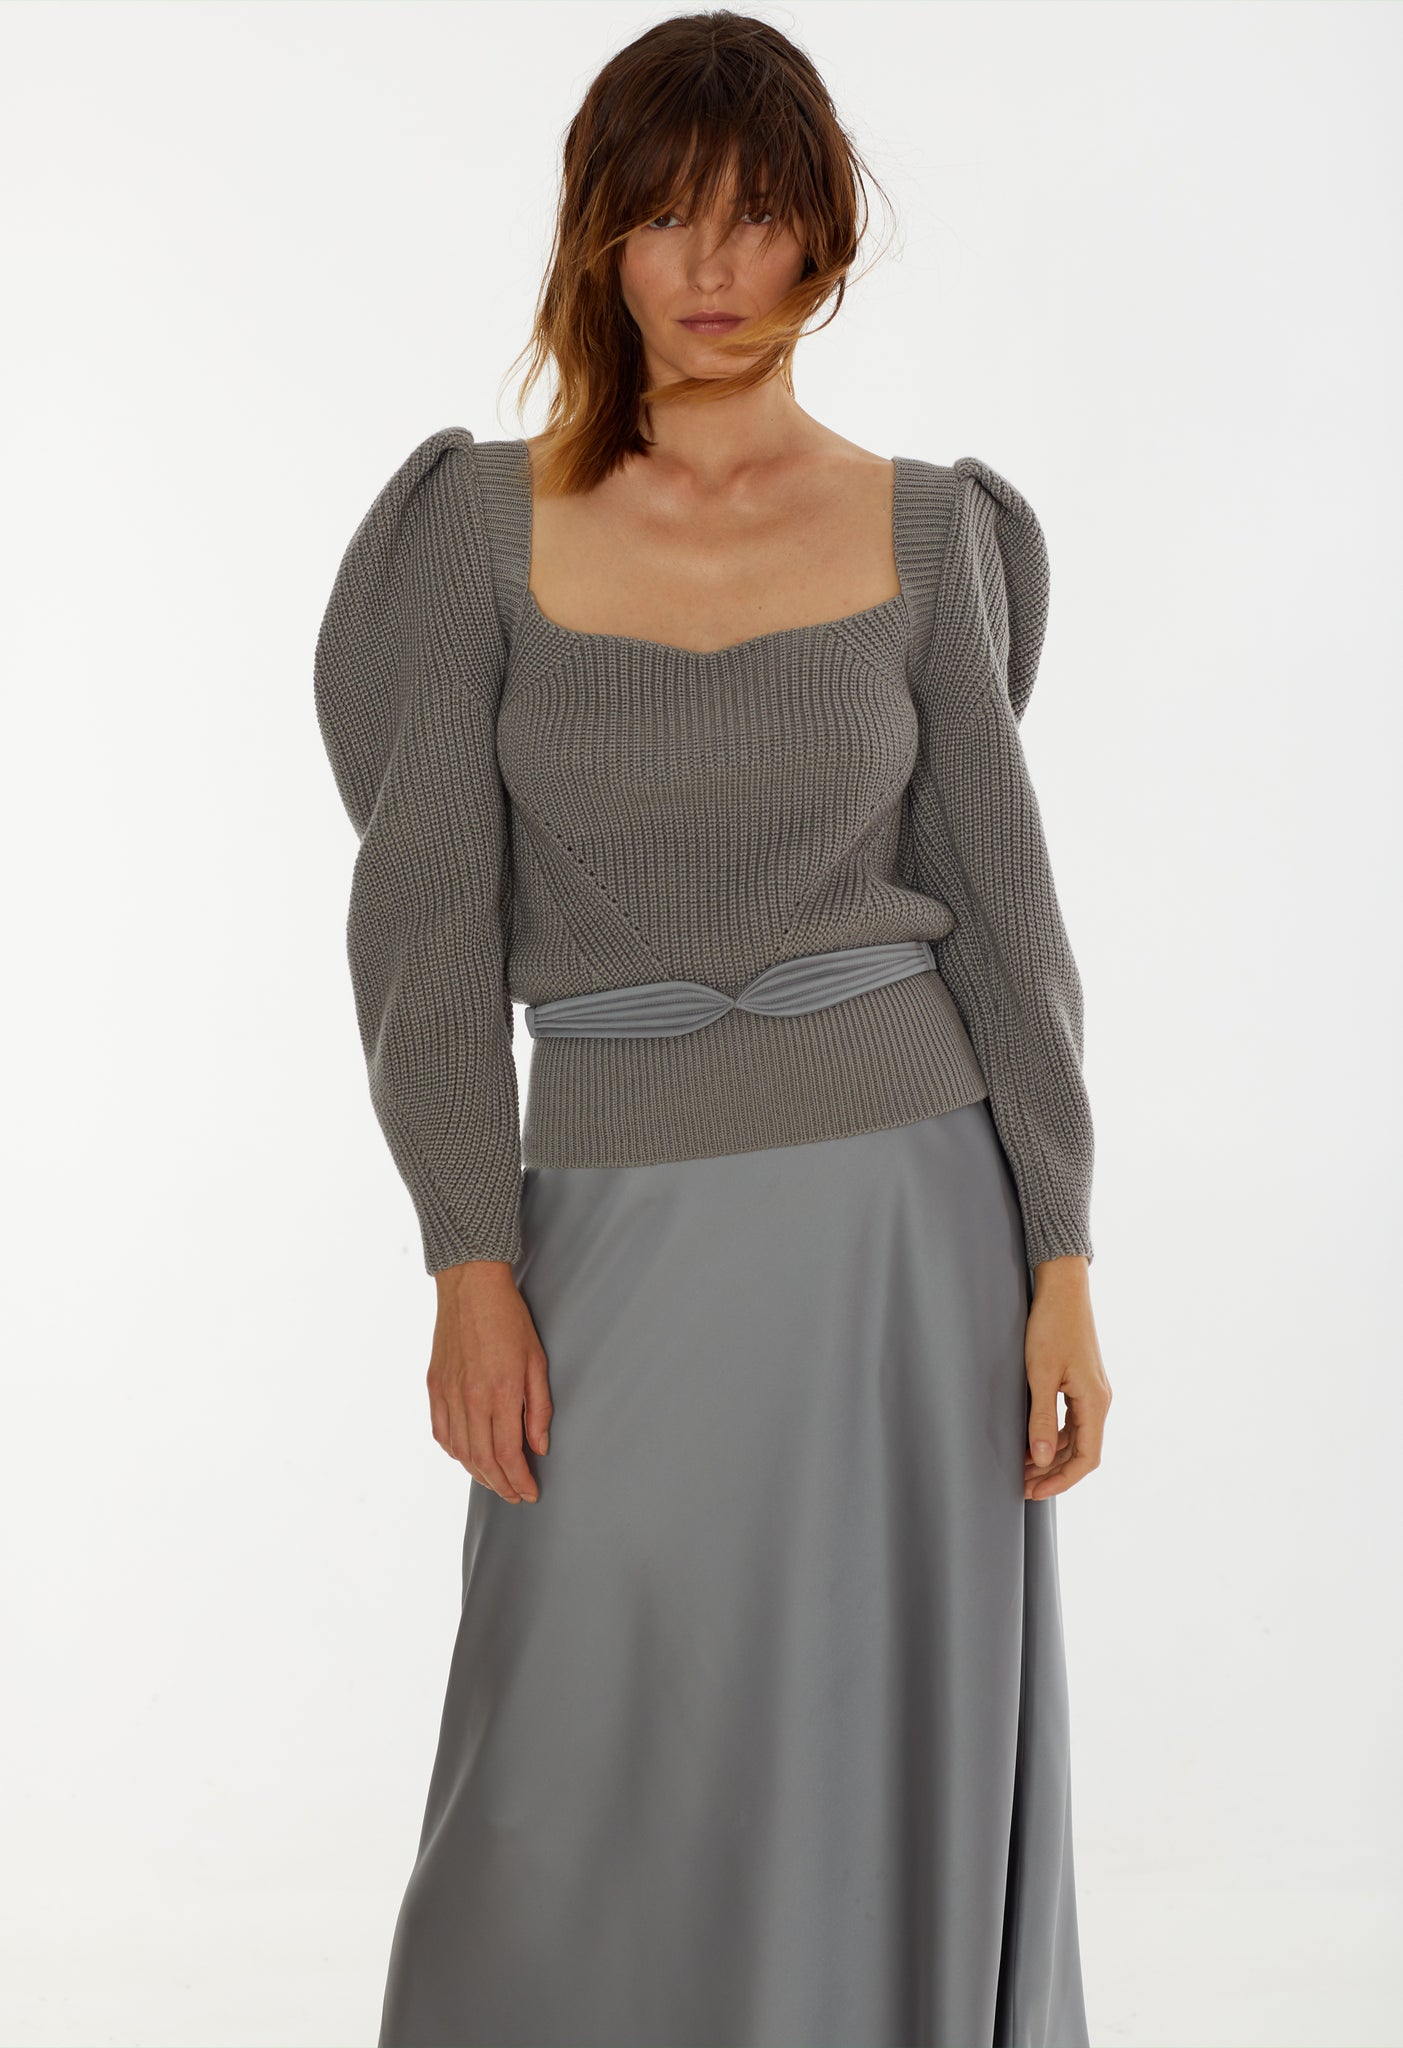 Model in Dido skirt